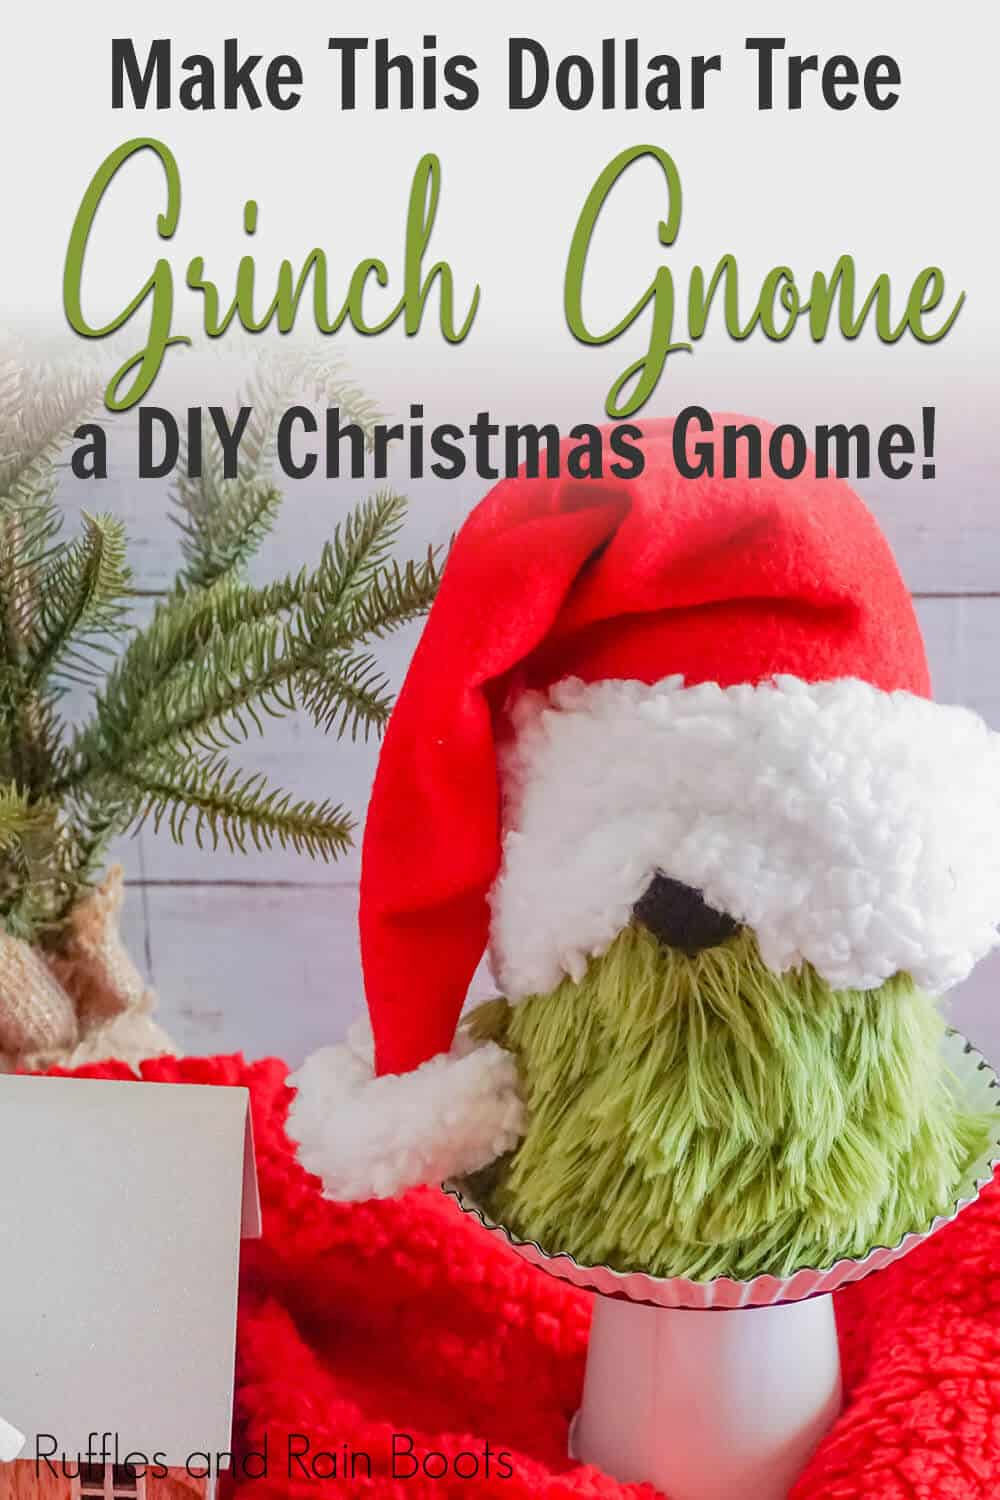 dollar store grinch gnome craft with text which reads make this dollar tree grinch gnome a diy christmas gnome!